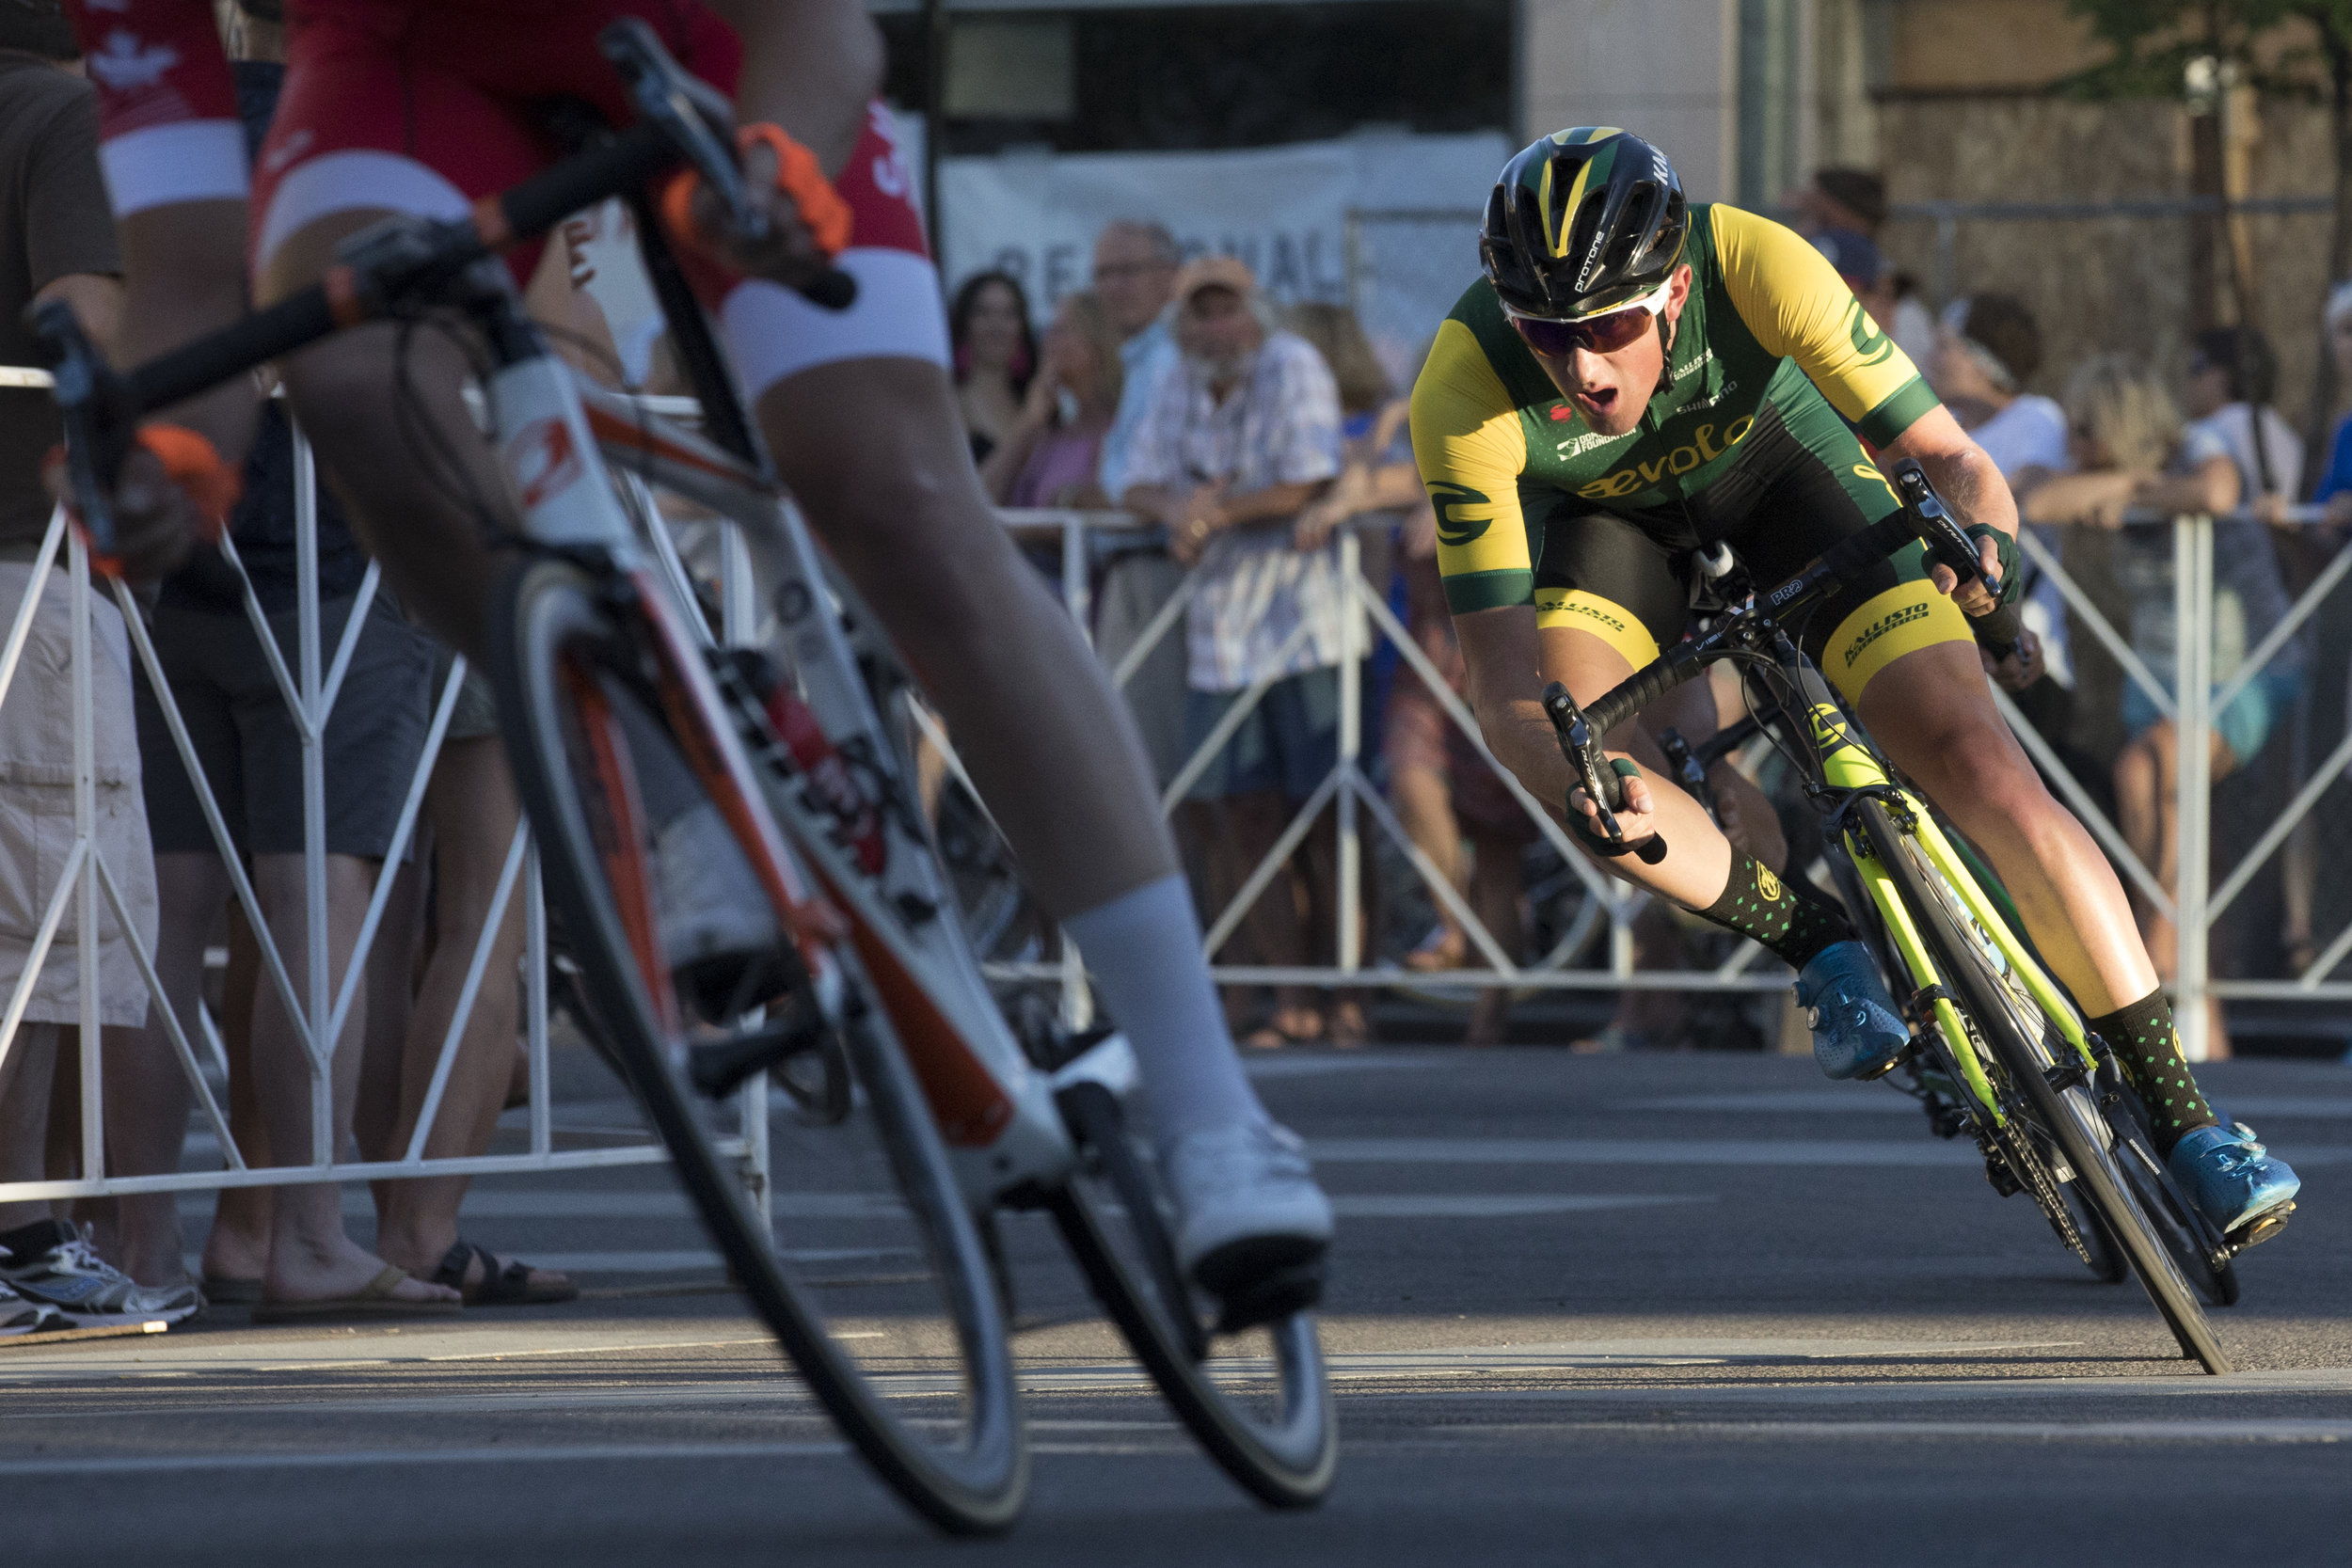 Gage Hecht, right, races at the men's pro at 32nd annual Boise Twilight Criterium in downtown on Saturday, July 14, 2018. Hecht finished as the men's pro winner.